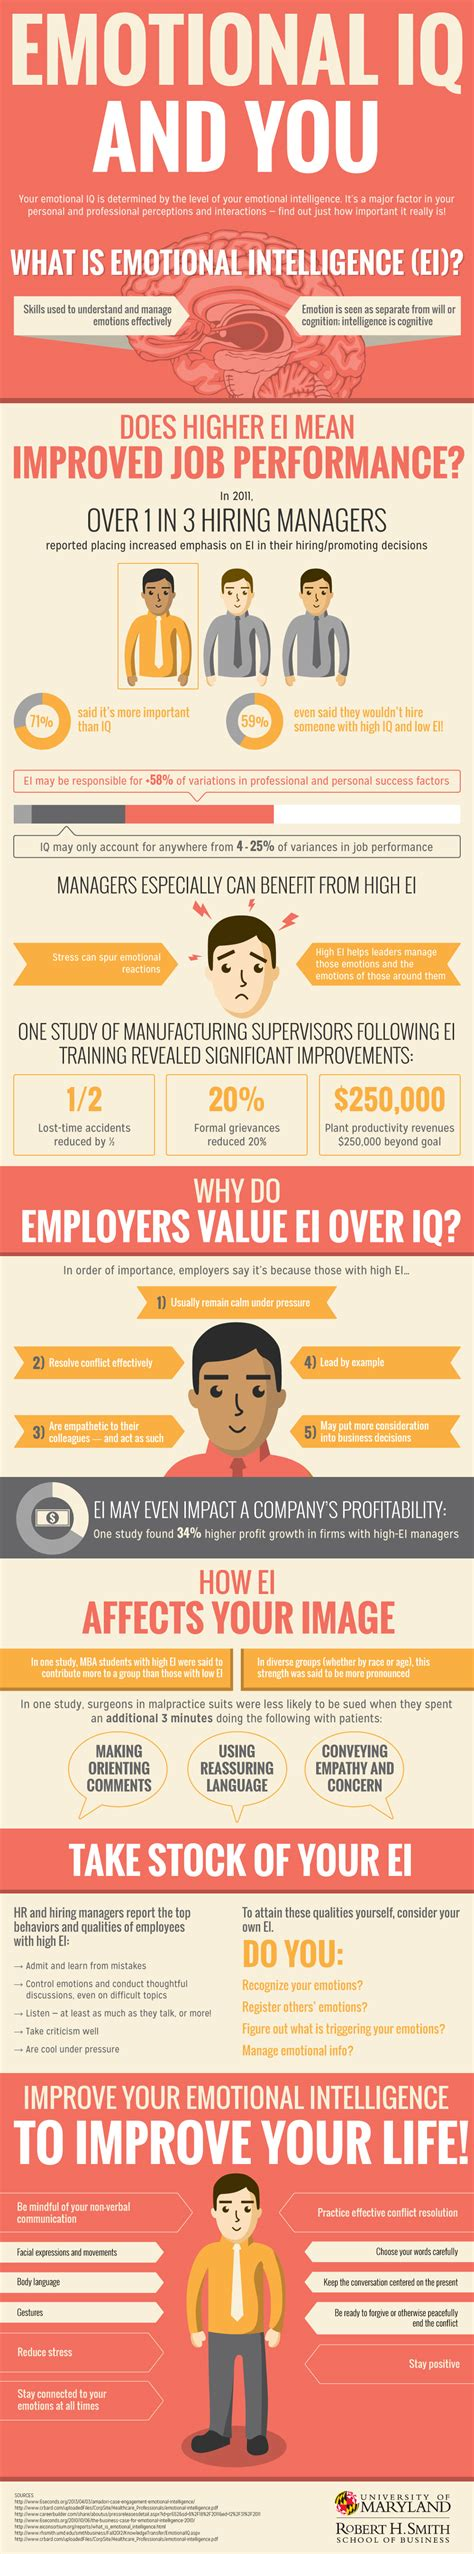 How Much Makes A Leader Mba by Emotional Iq And You Umd Mba